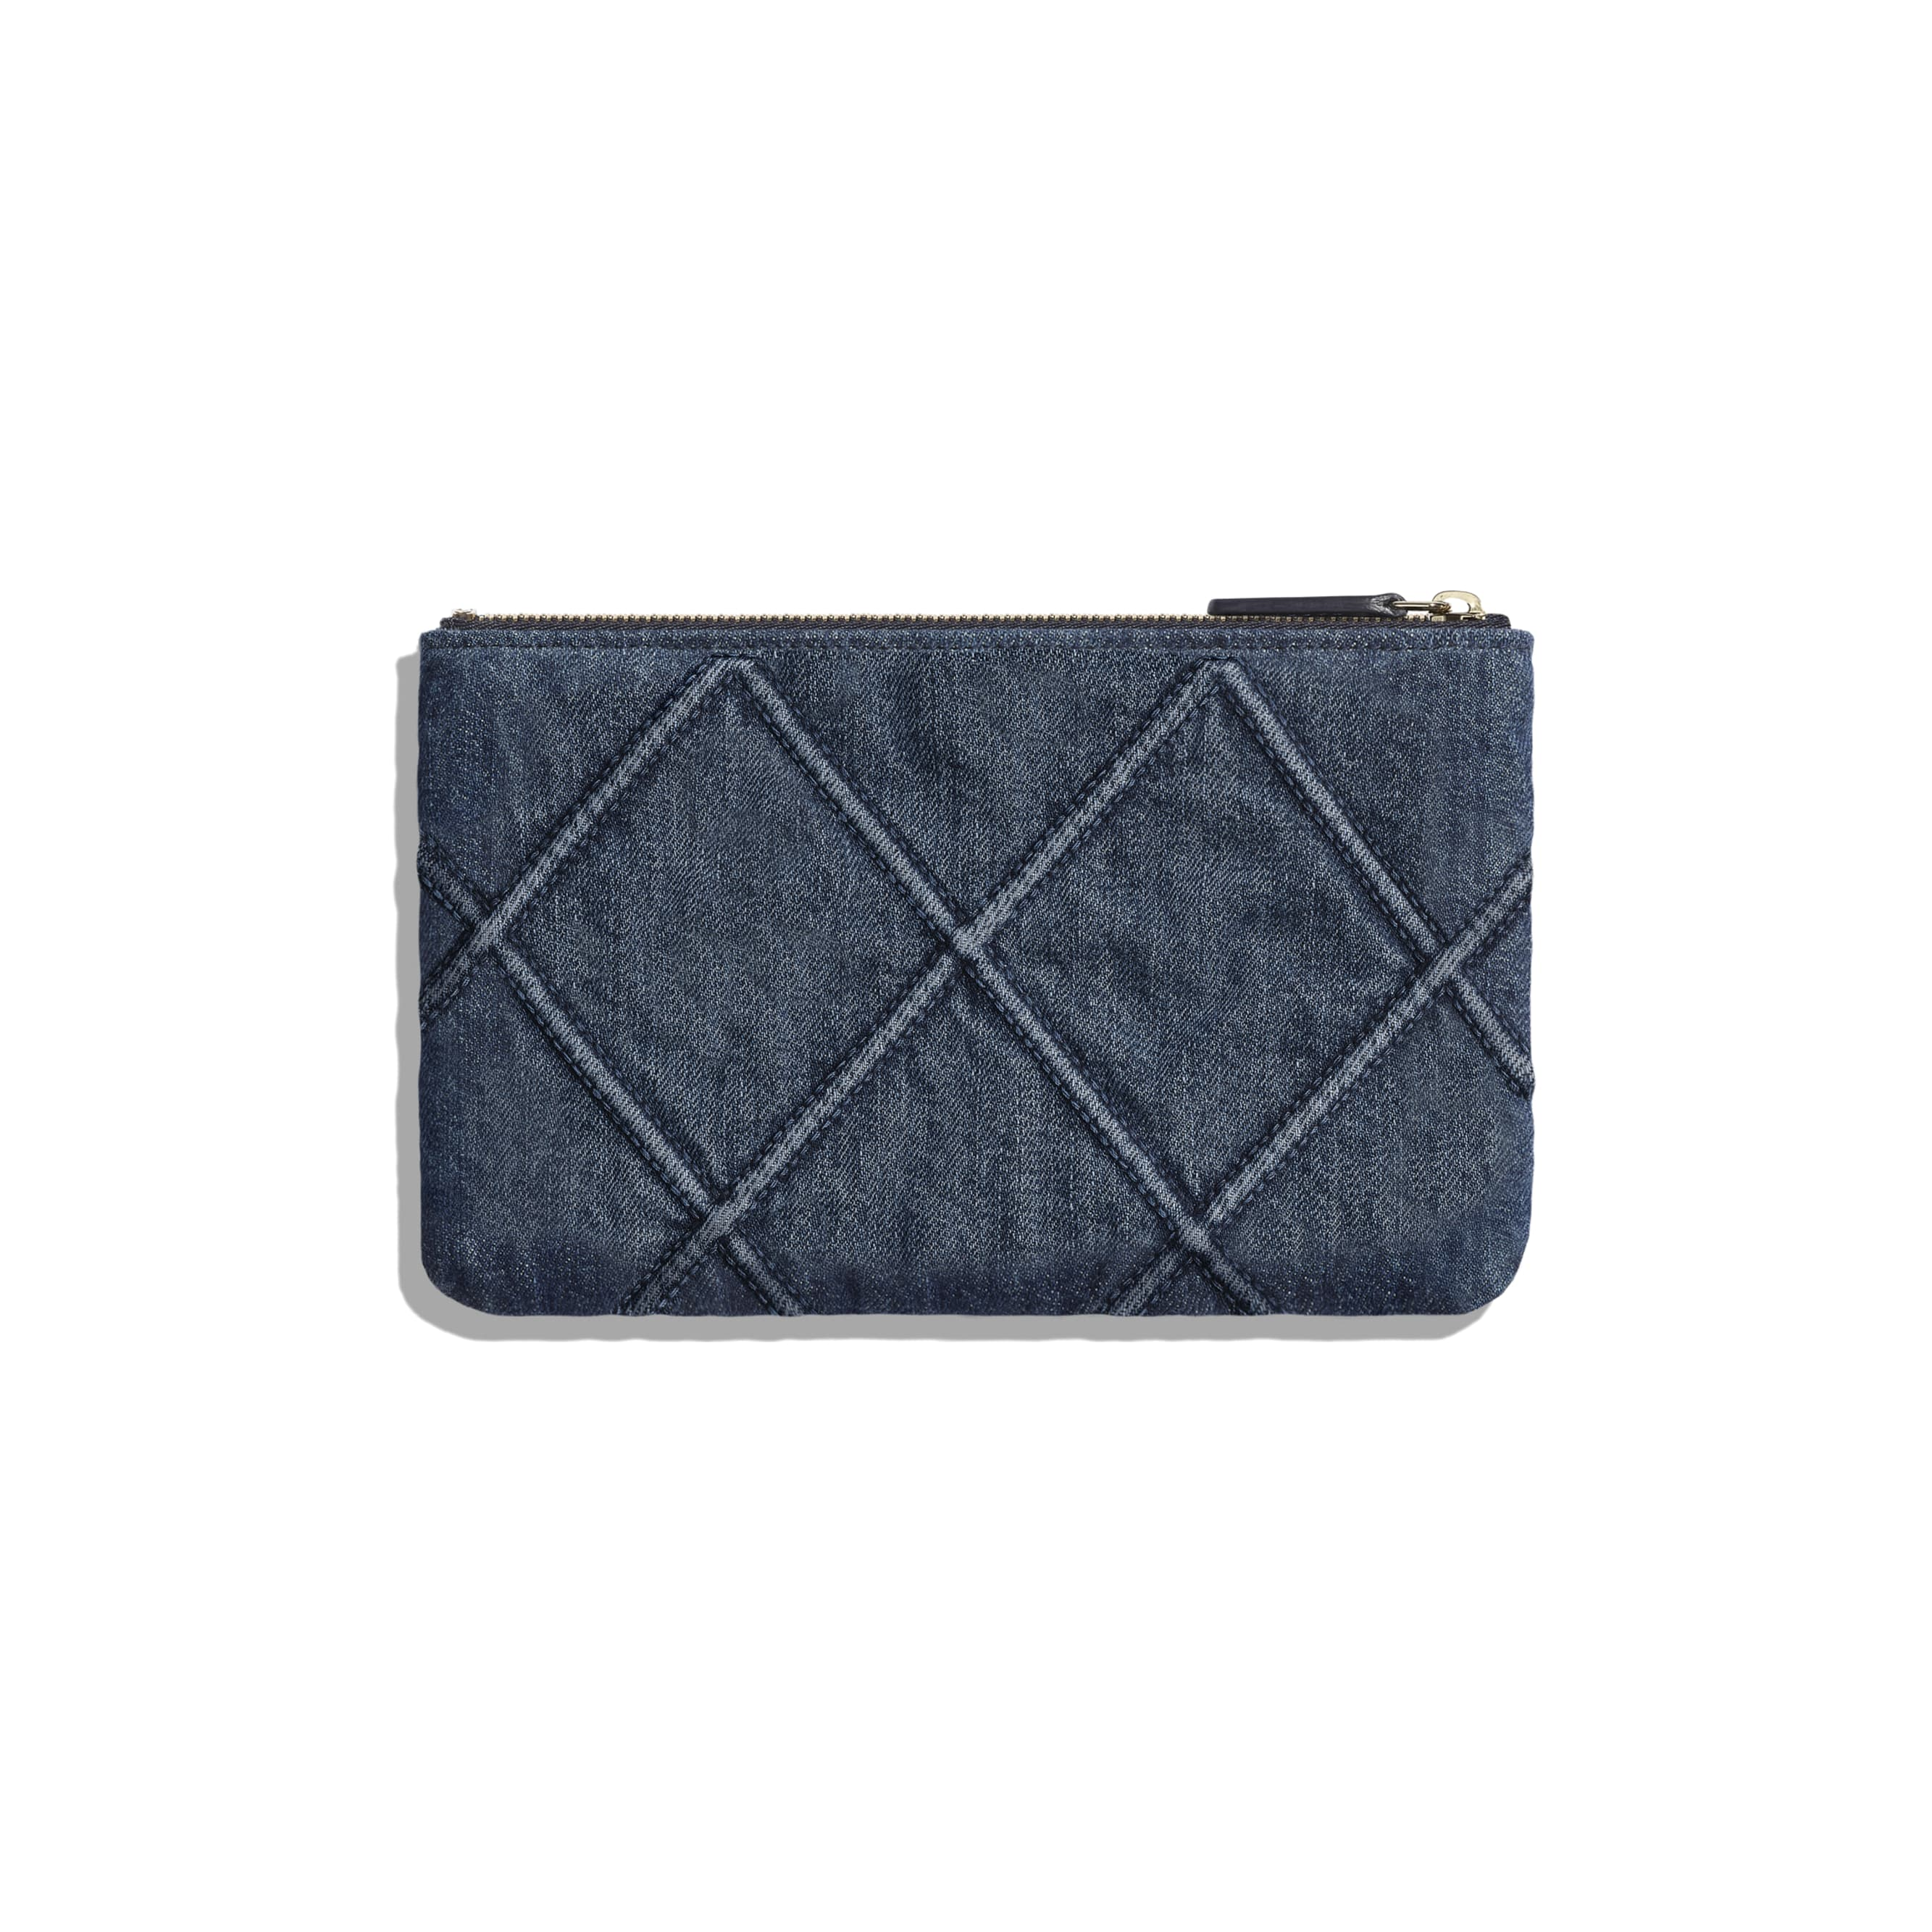 CHANEL 19 Small Pouch - Blue - Denim, Gold-Tone, Silver-Tone & Ruthenium-Finish Metal - CHANEL - Alternative view - see standard sized version